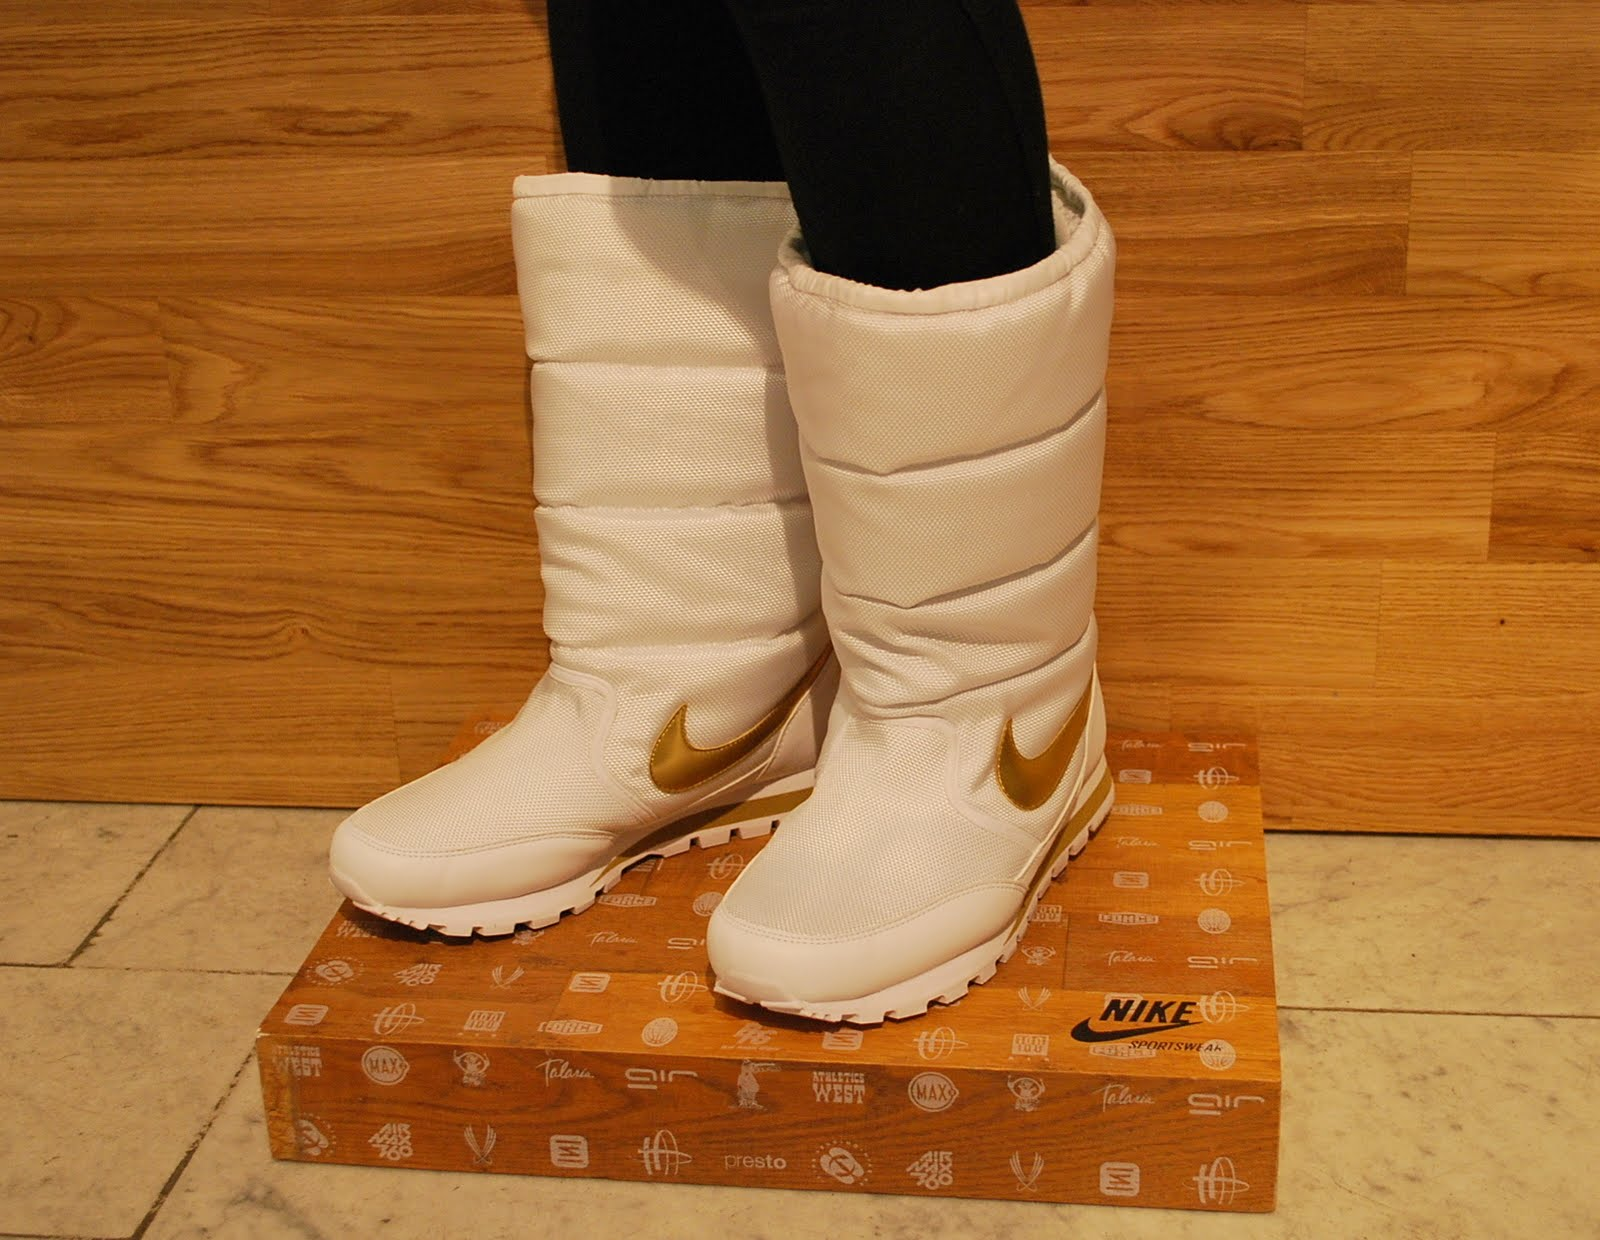 Women's Nike quilts: winter boots with fur